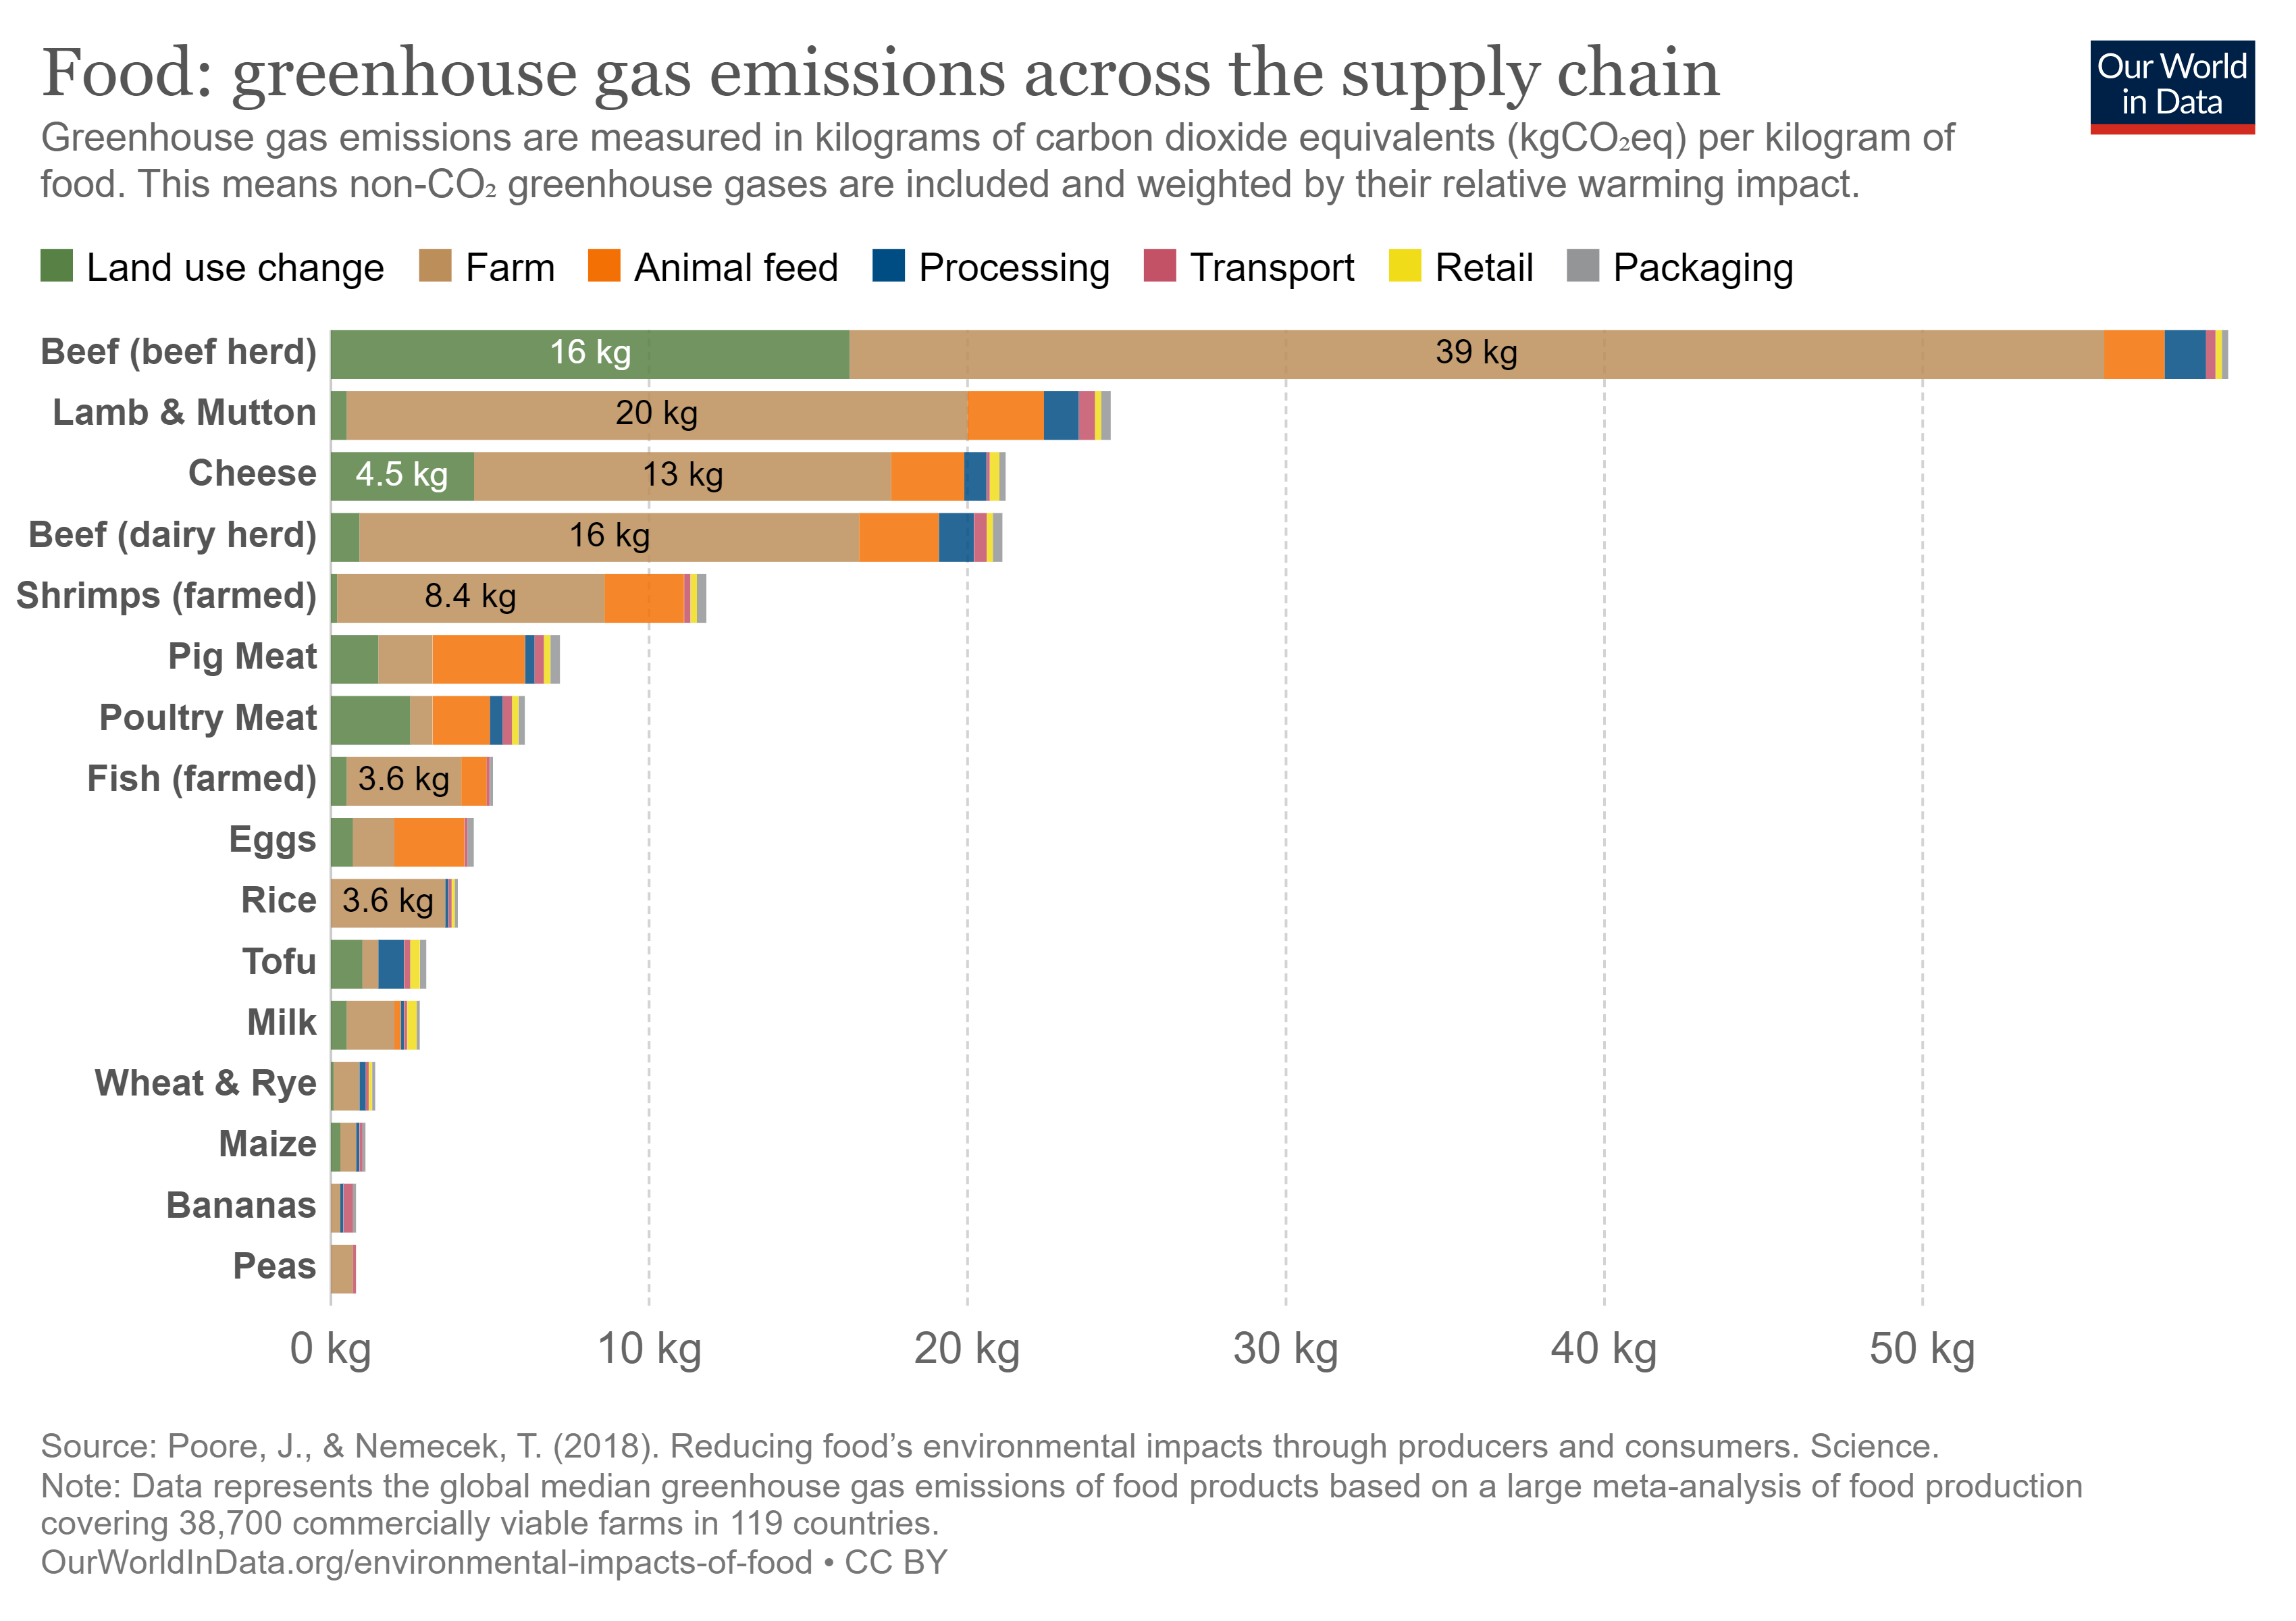 How CO2 emissions from the supply chain differ by food product